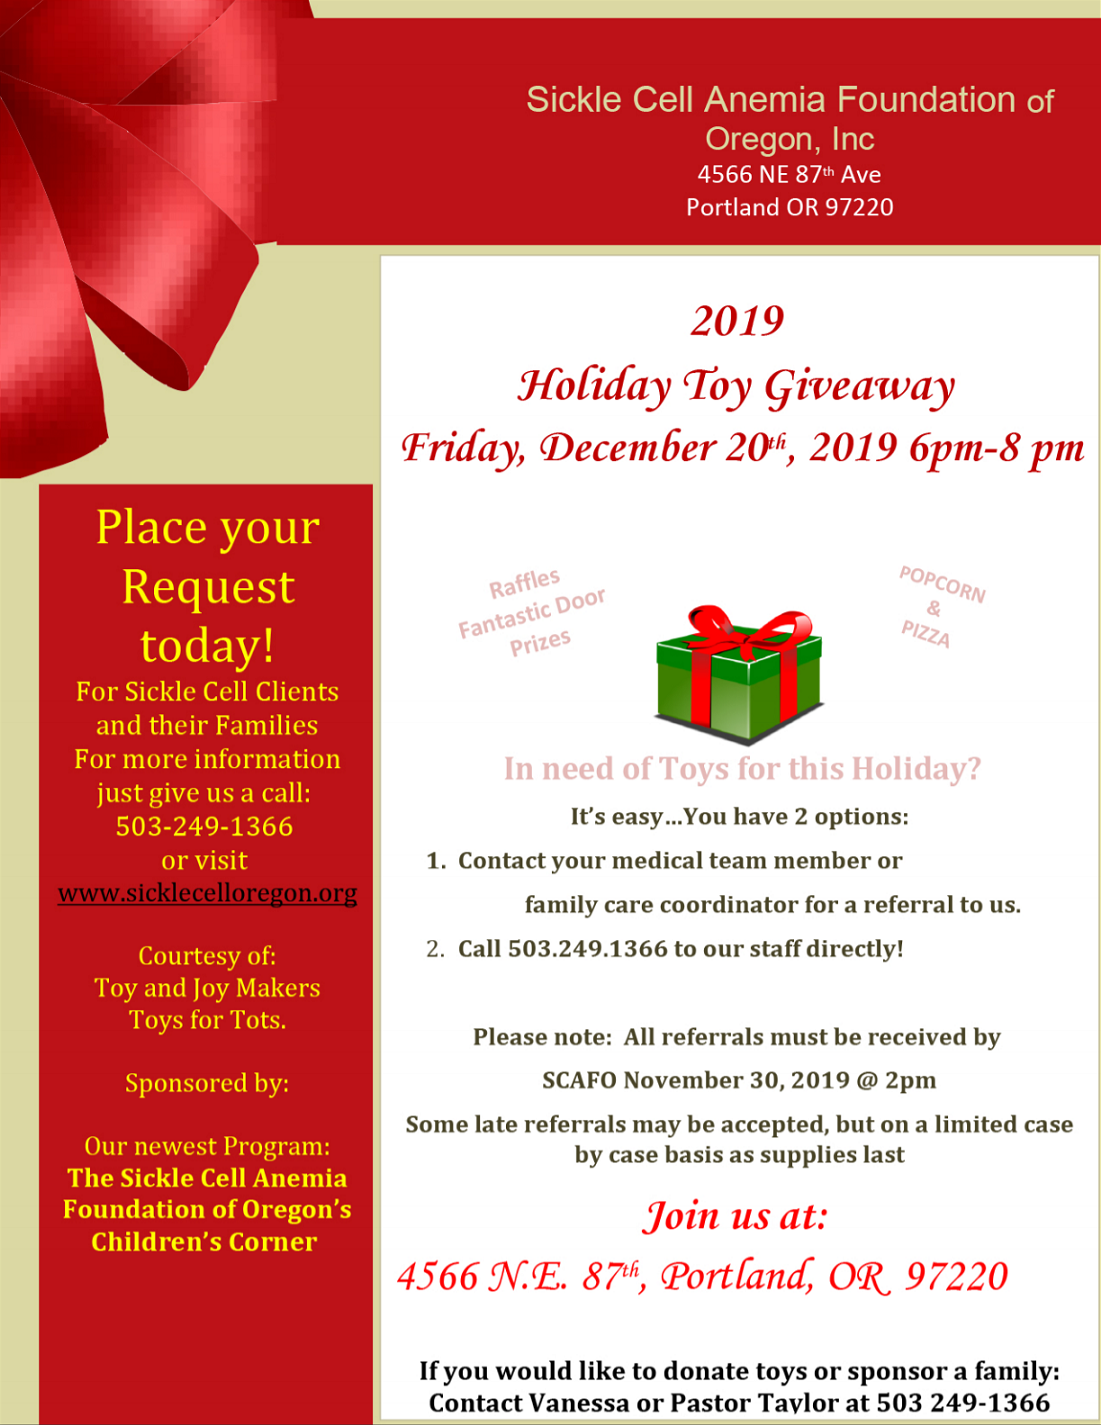 Holiday Toy Giveaway 2019!